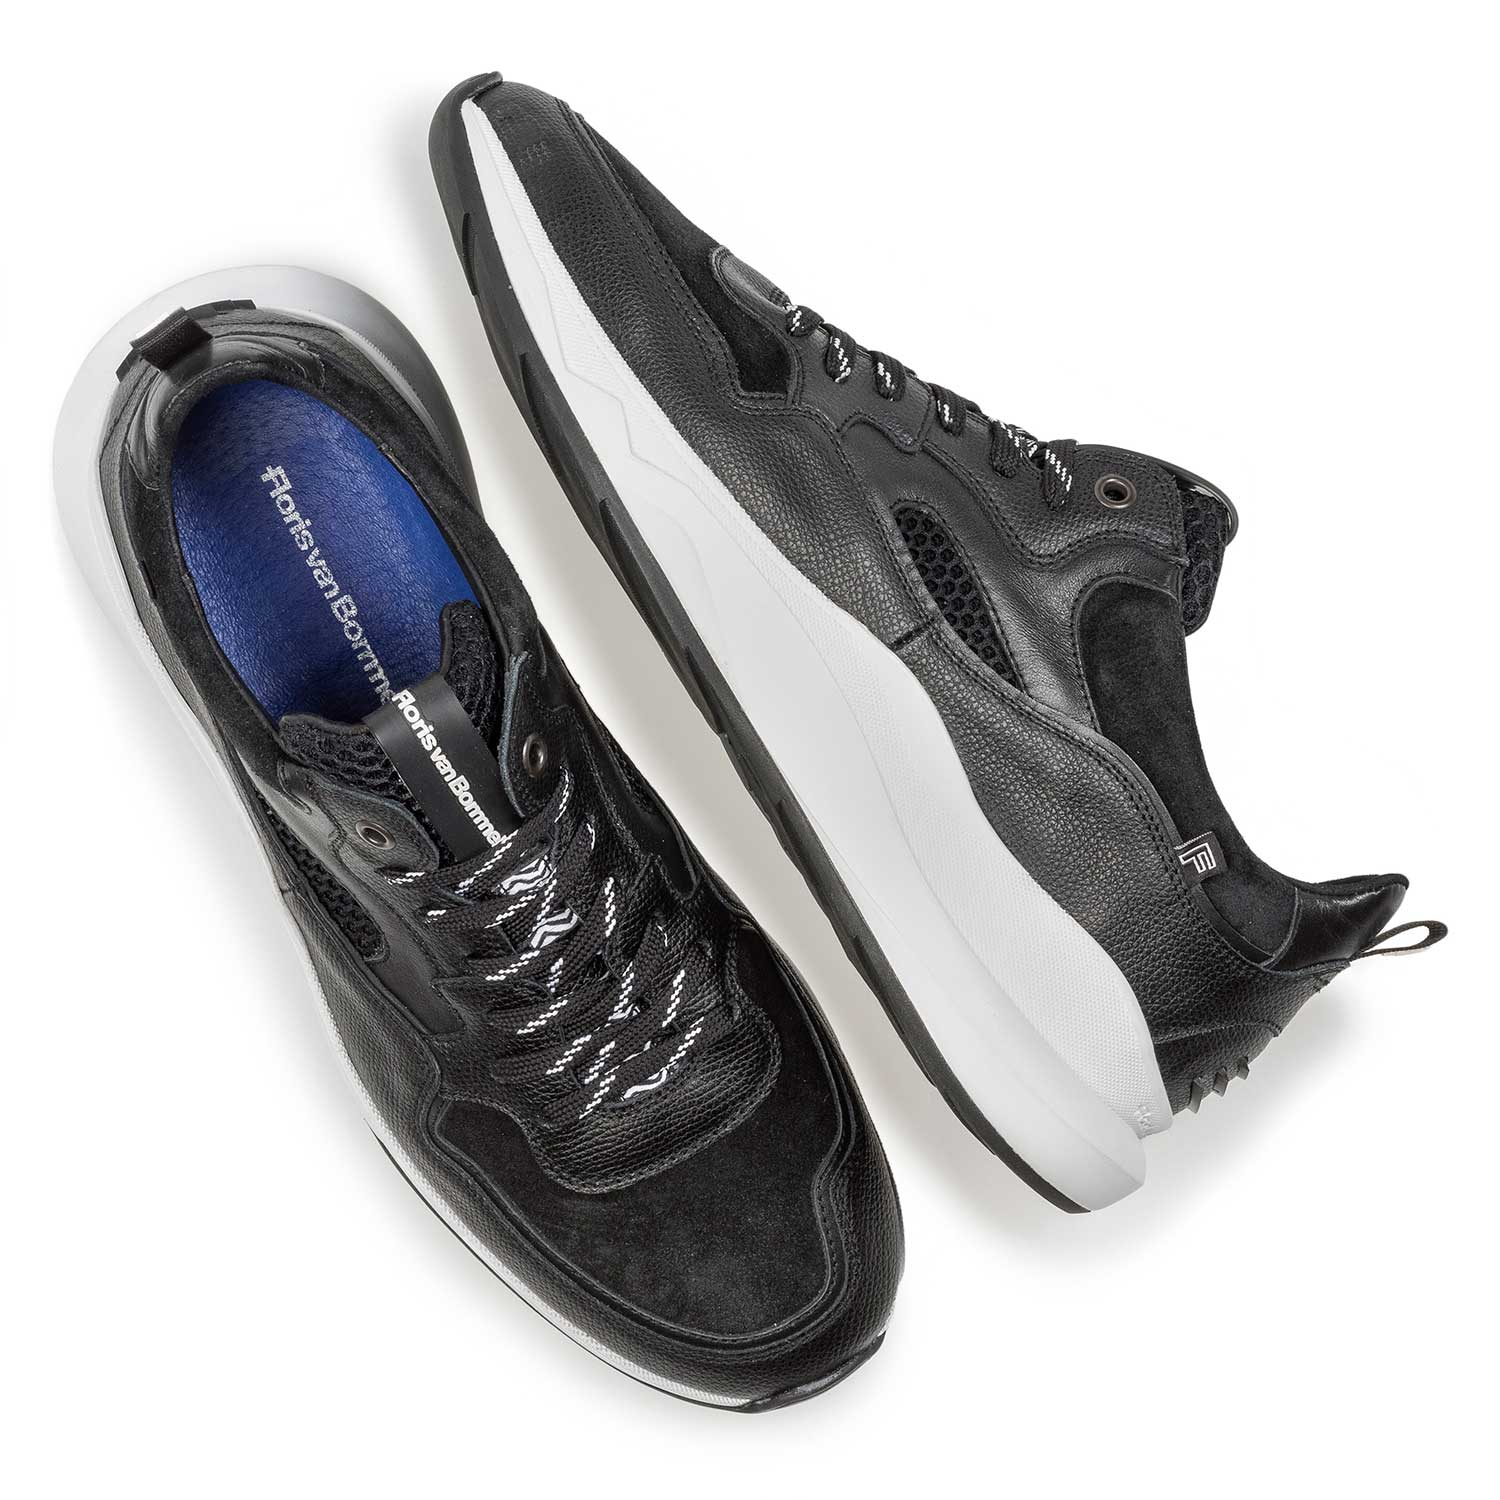 16269/00 - Black calf leather sneaker with fine texture